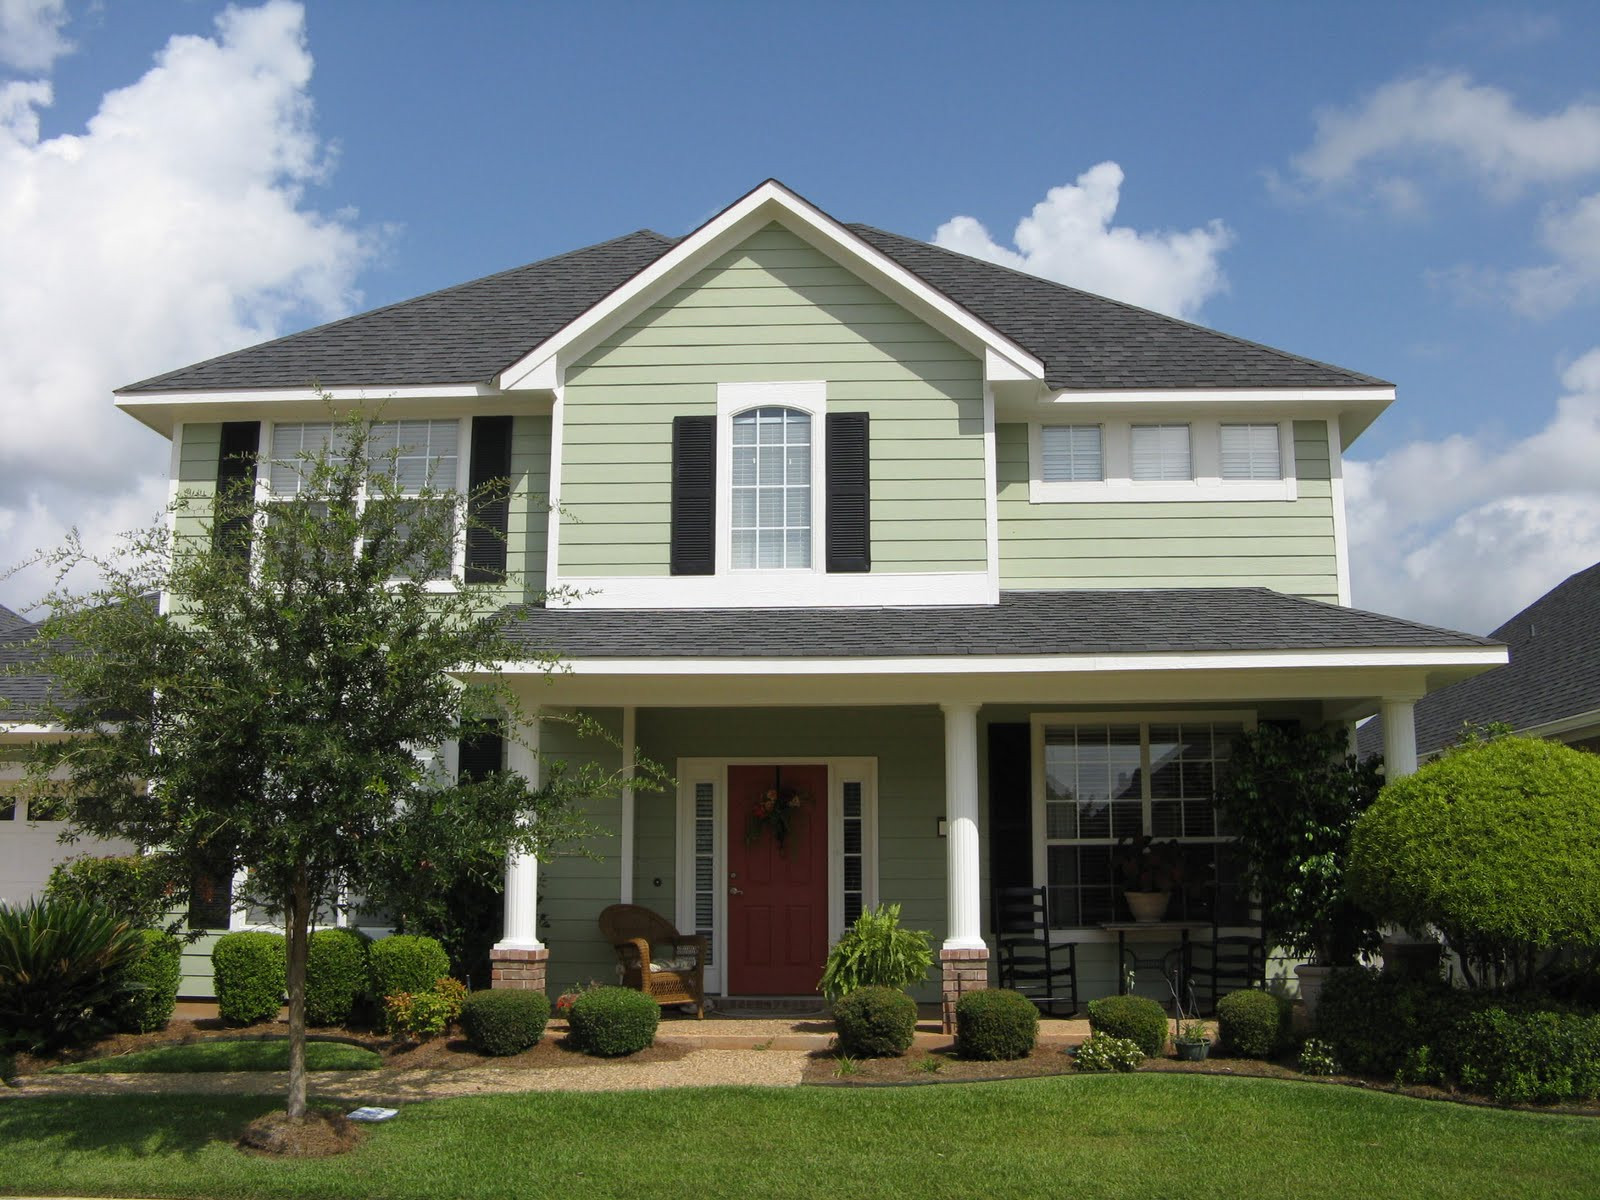 Best ideas about Exterior House Paint Colors Photo Gallery . Save or Pin Guide to Choosing the Right Exterior House Paint Colors Now.